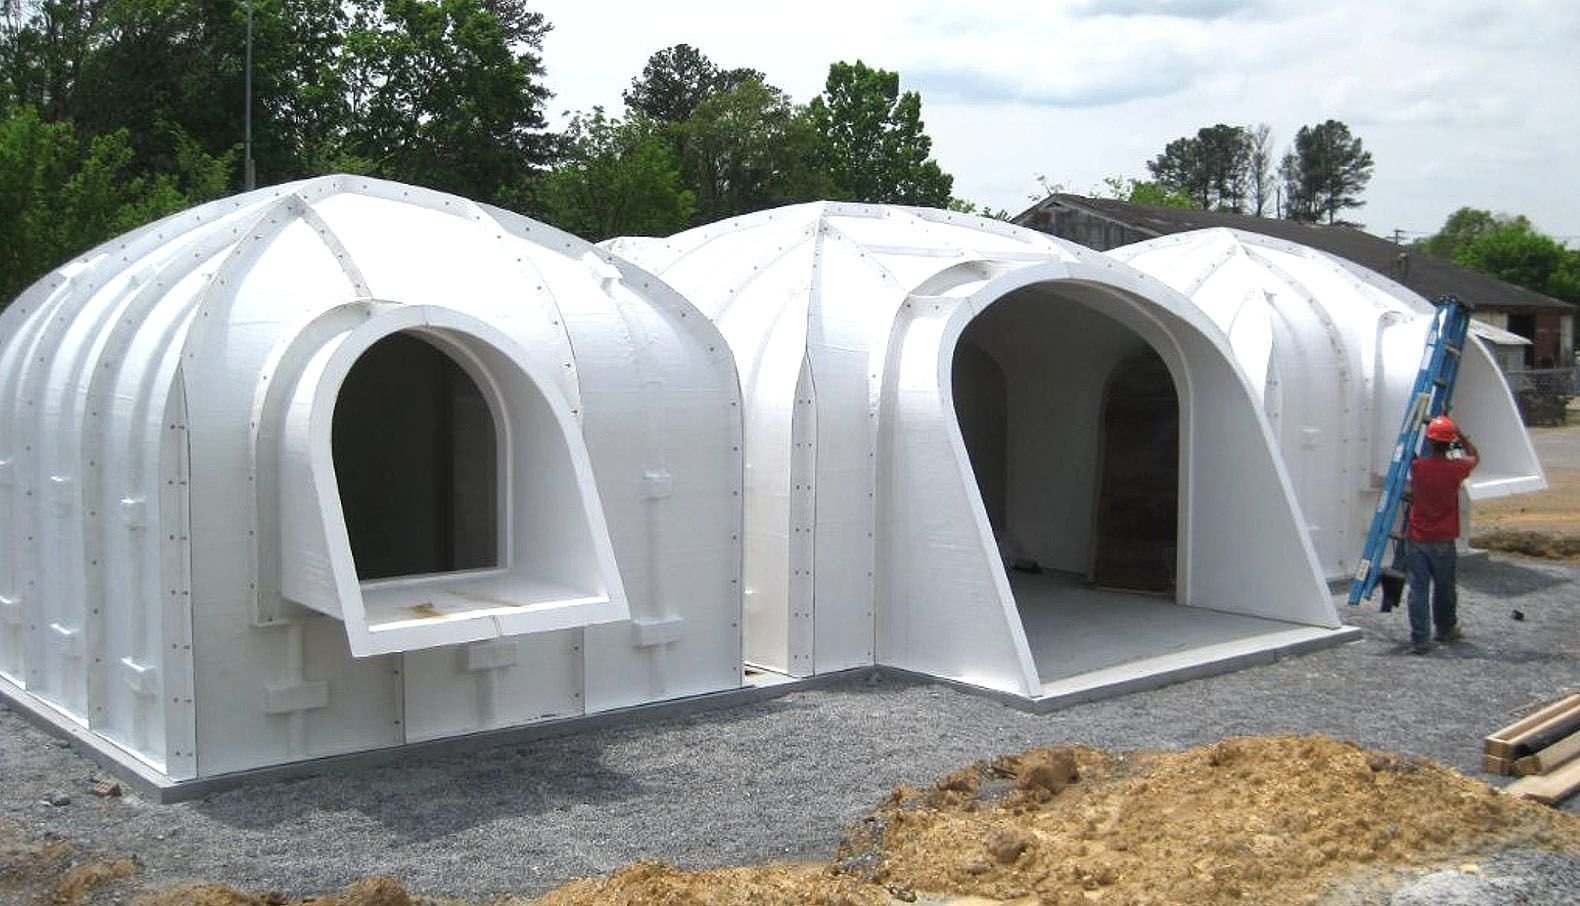 Houses Built Underground A Green Roofed Hobbit Home Anyone Can Build In Just 3 Days